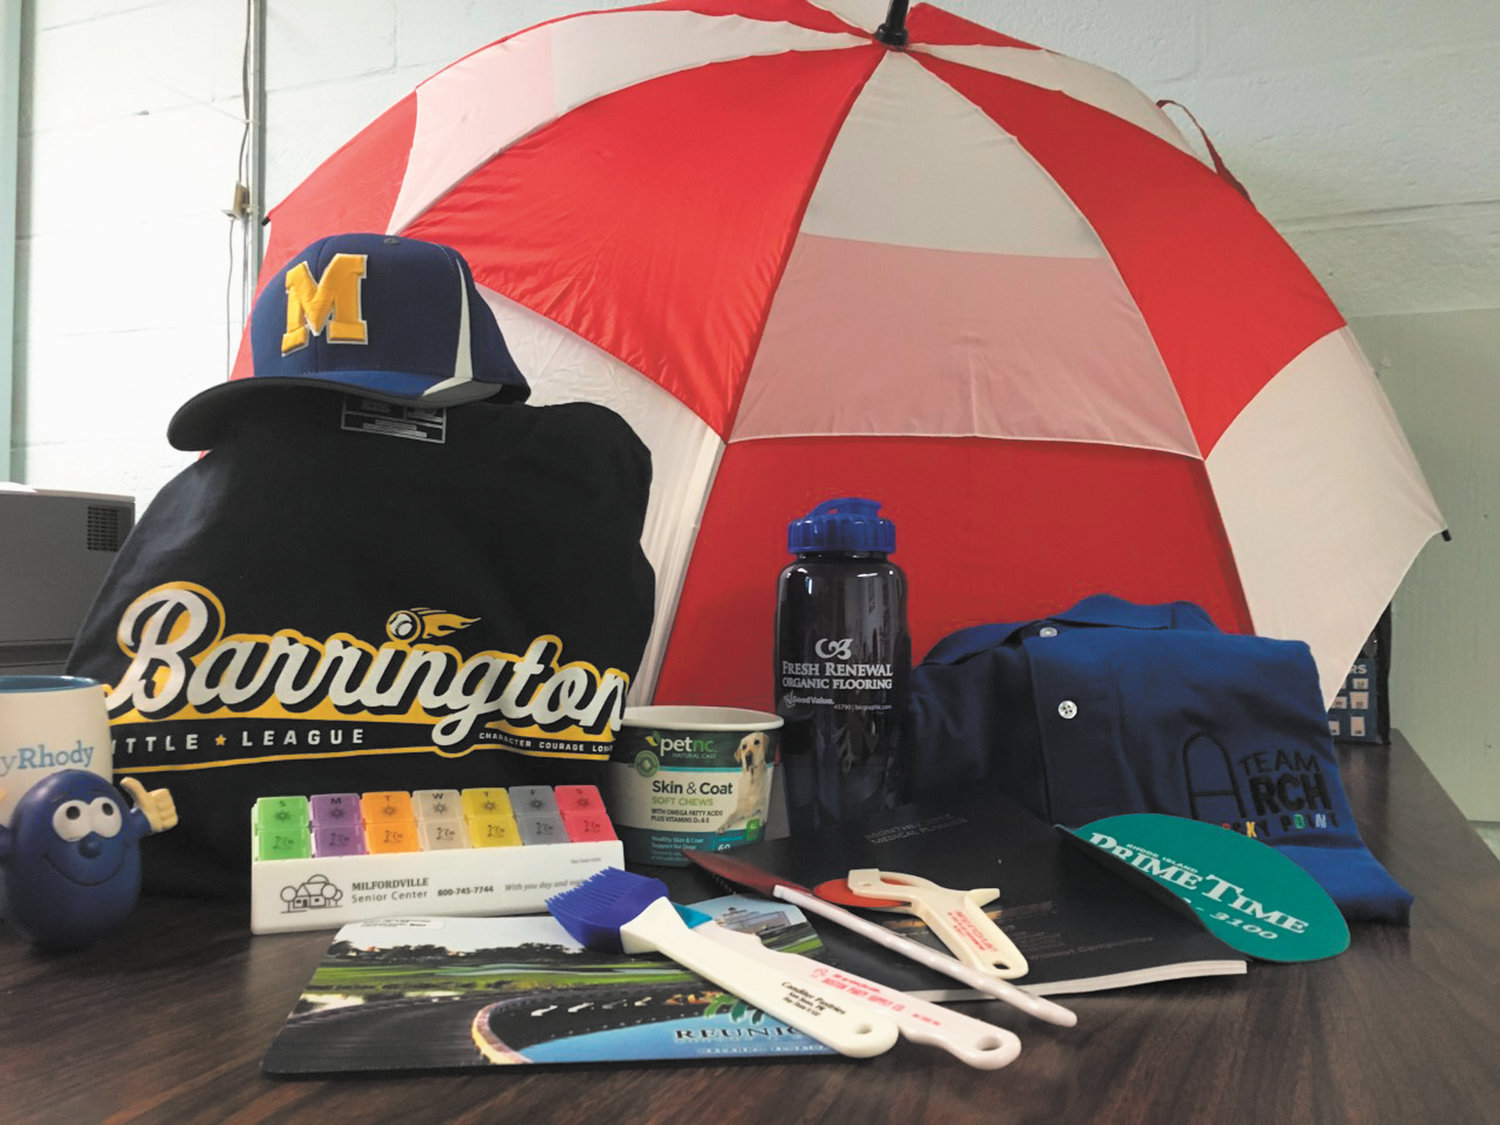 Check out some of the many promotional products available through RhodyPrints ~ all providing the perfect platform to spread the word about your business or to make your next event personal and unforgettable.